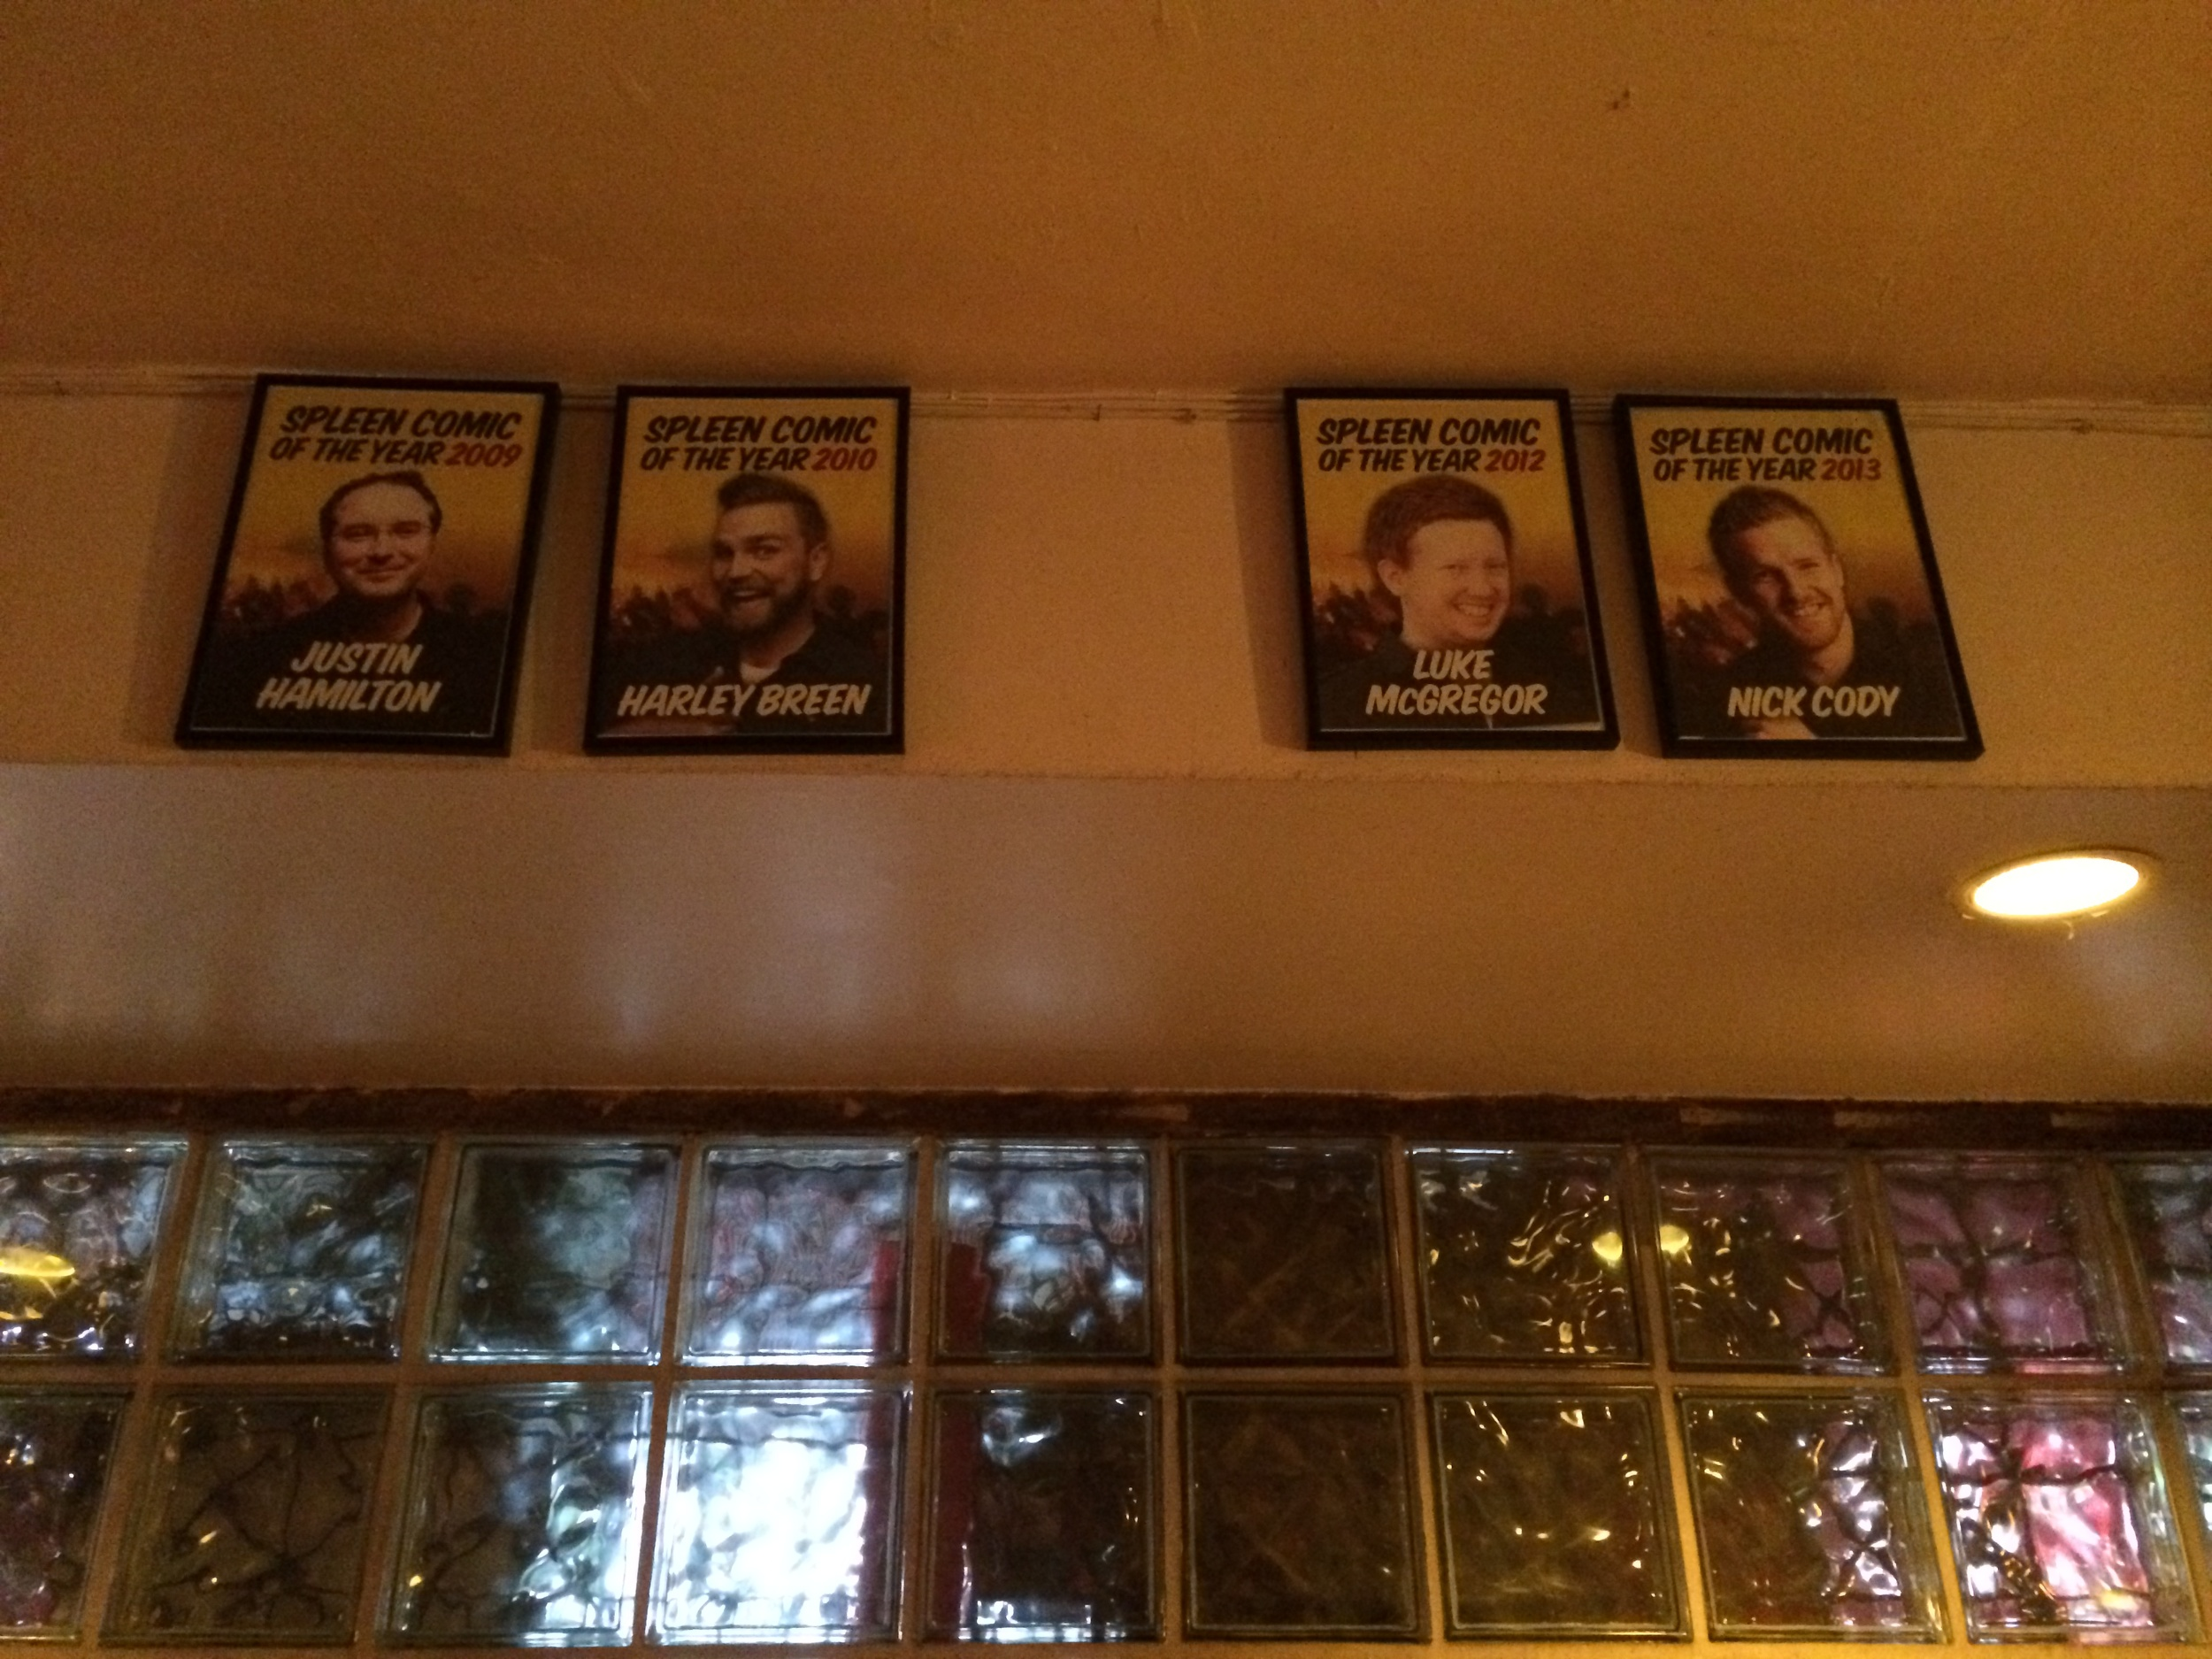 Do you recognise who is missing from the Spleen comedian of the year wall of fame?  I'll give you a hint.  It is Xavier Michelides.